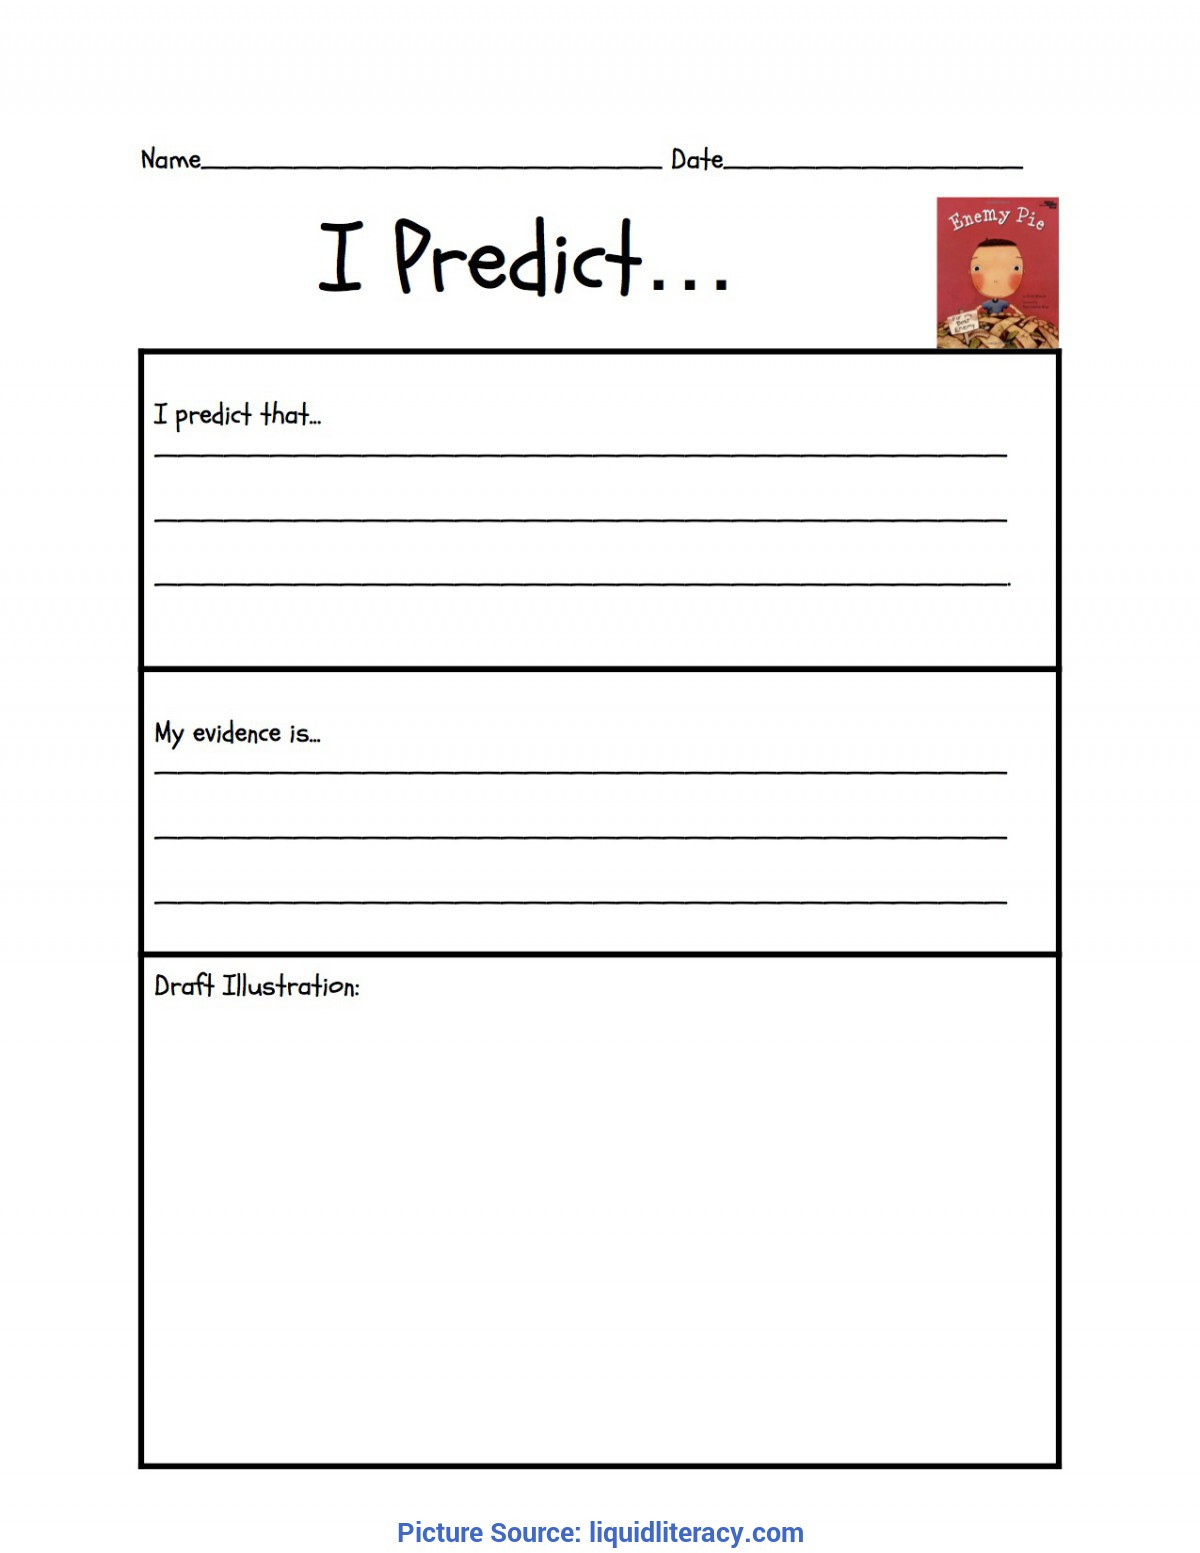 Prediction Worksheets 3rd Grade Math Lesson Plan Template Business 3rd Grade Plans Ota Tech